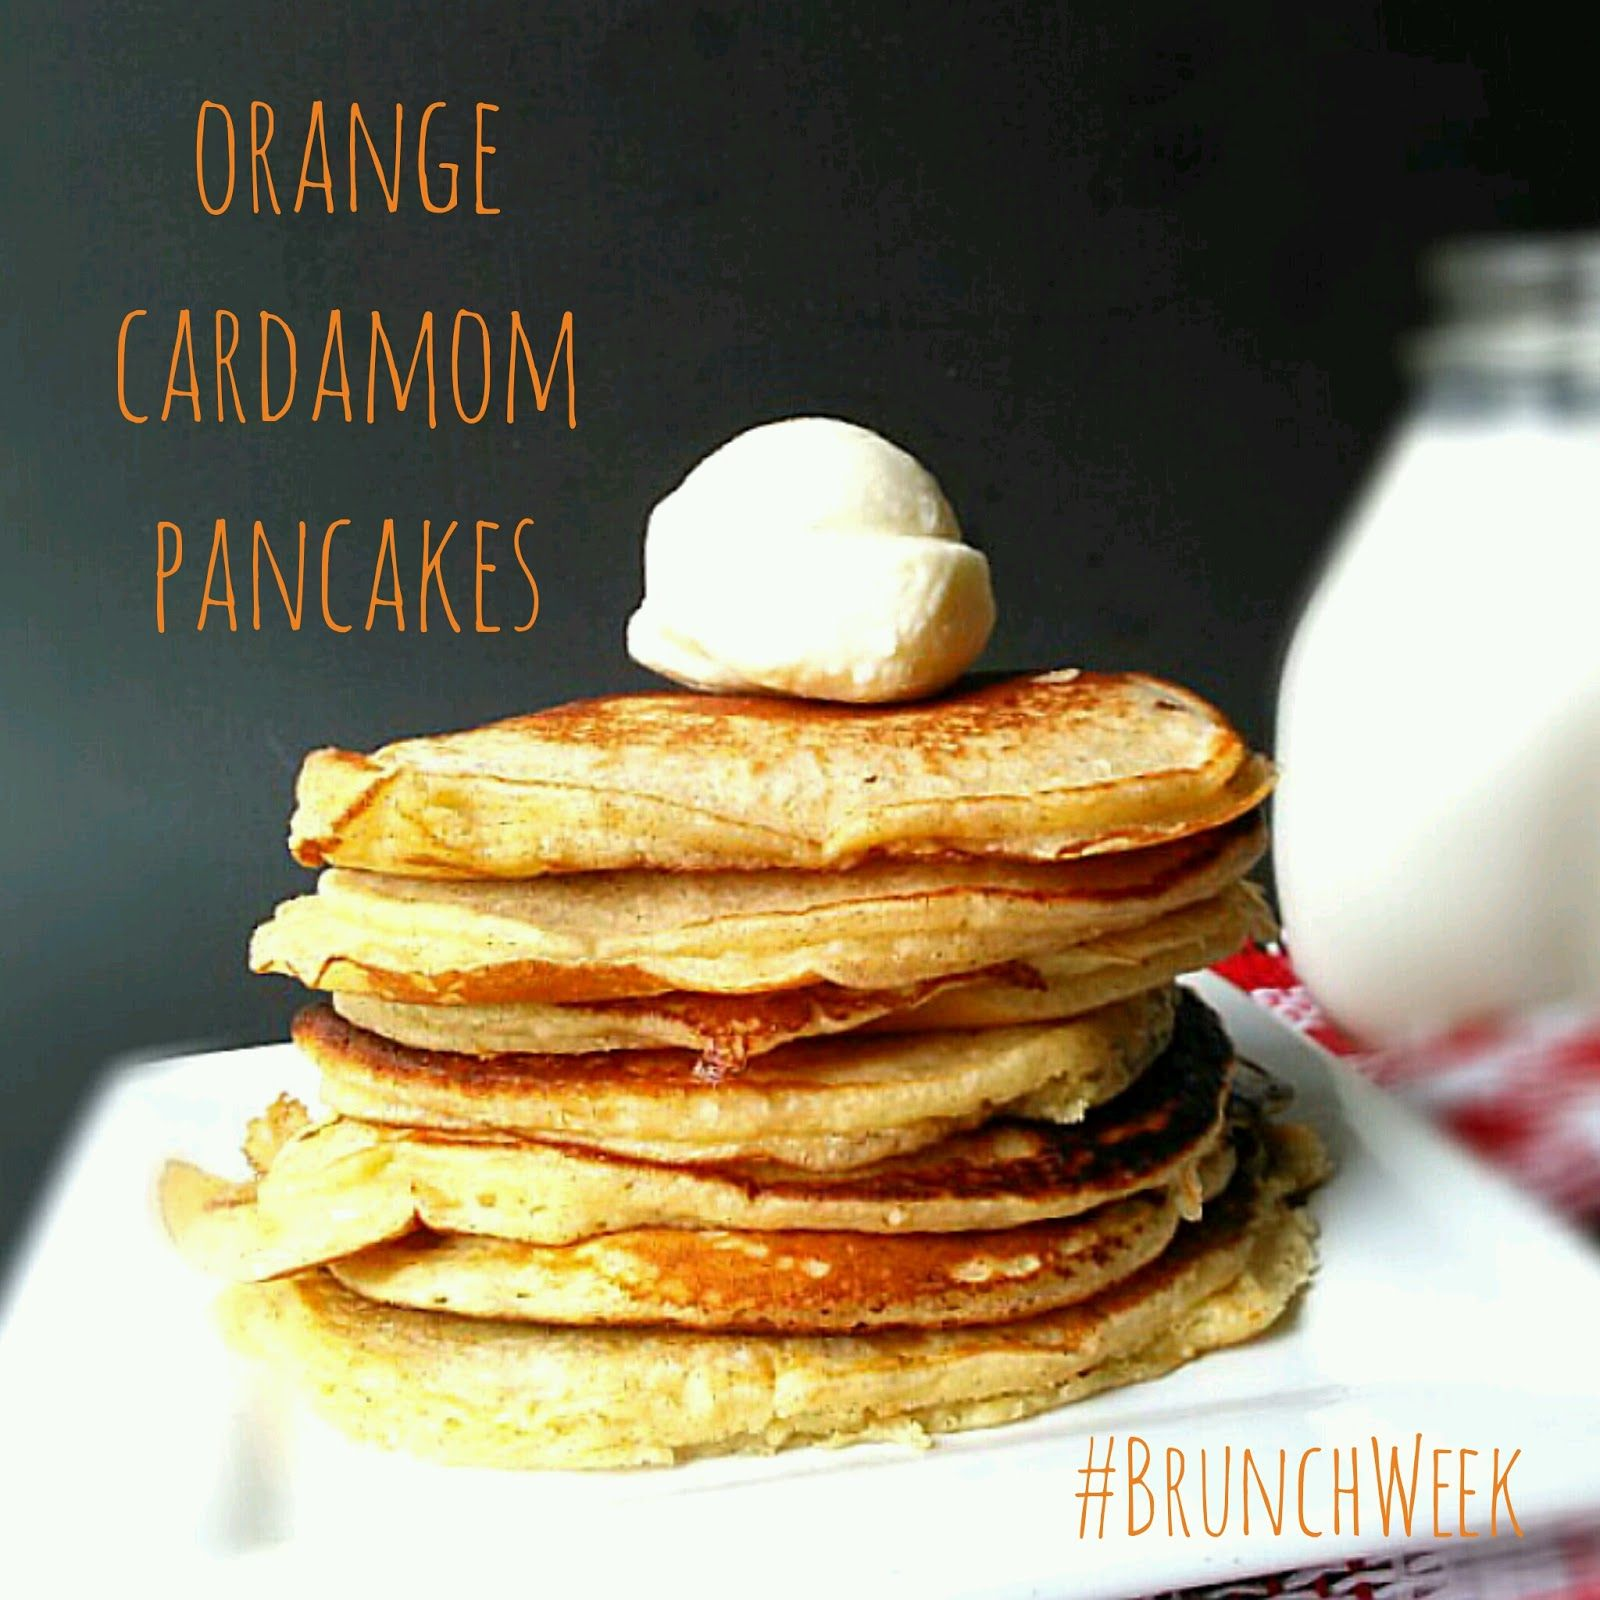 These Orange Cardamom Pancakes are the fluffiest, most flavorful flapjacks you've ever had. You'll never guess the secret ingredient #BrunchWeek